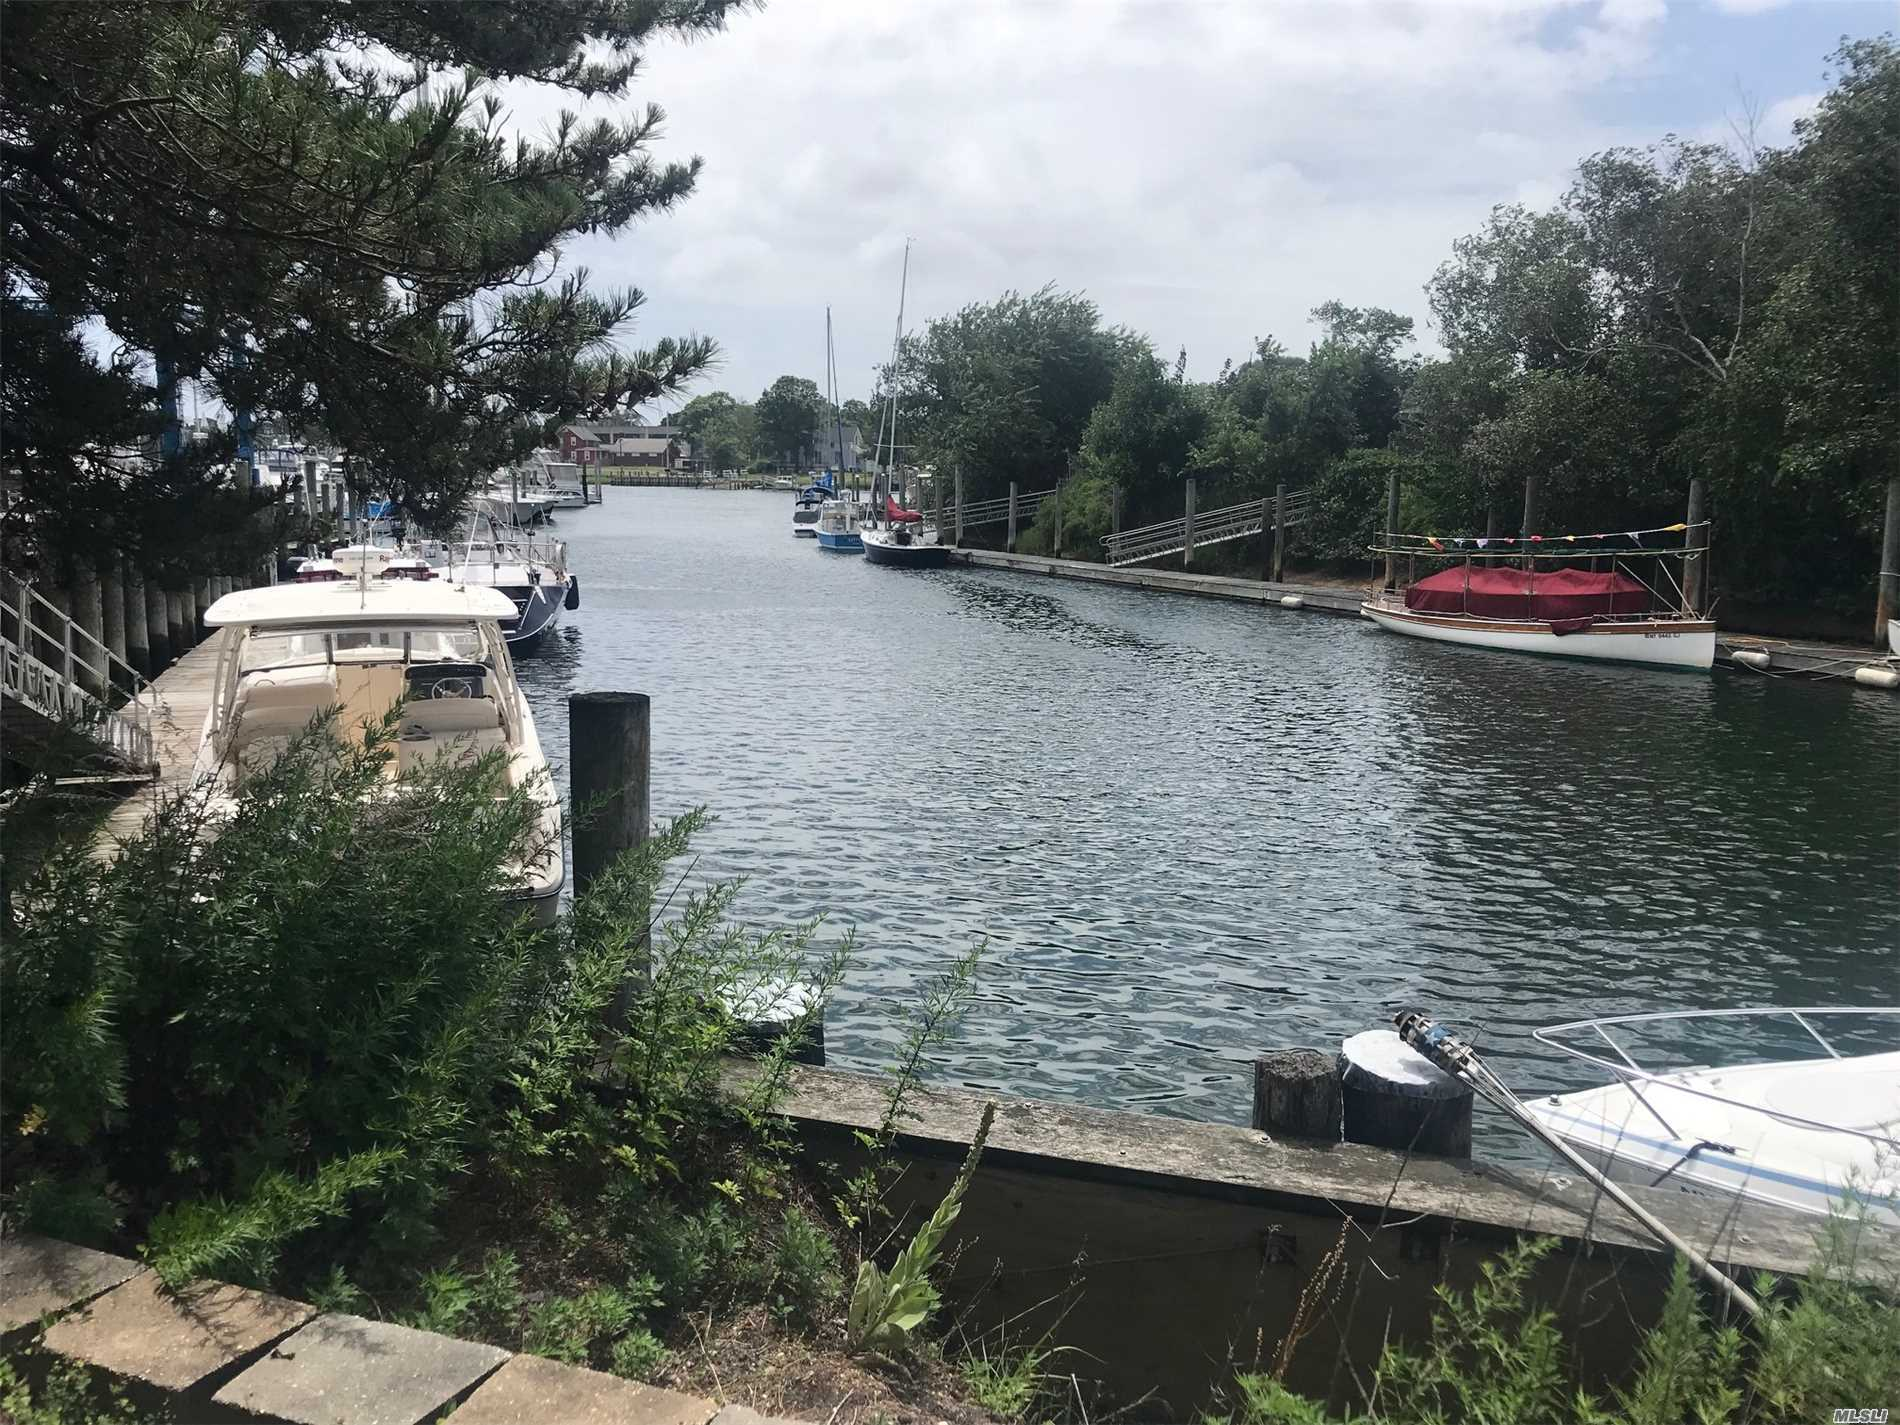 A Chance To Own A Unique Waterfront Property In Greenport And Make Money At Your Own Marina. 190' Linear Feet Of Bulkhead. A Passive Income Can Be Yours. A Perfect Place For A Yacht Club, Boat & Yacht Sales Office, And Marine Related Business.